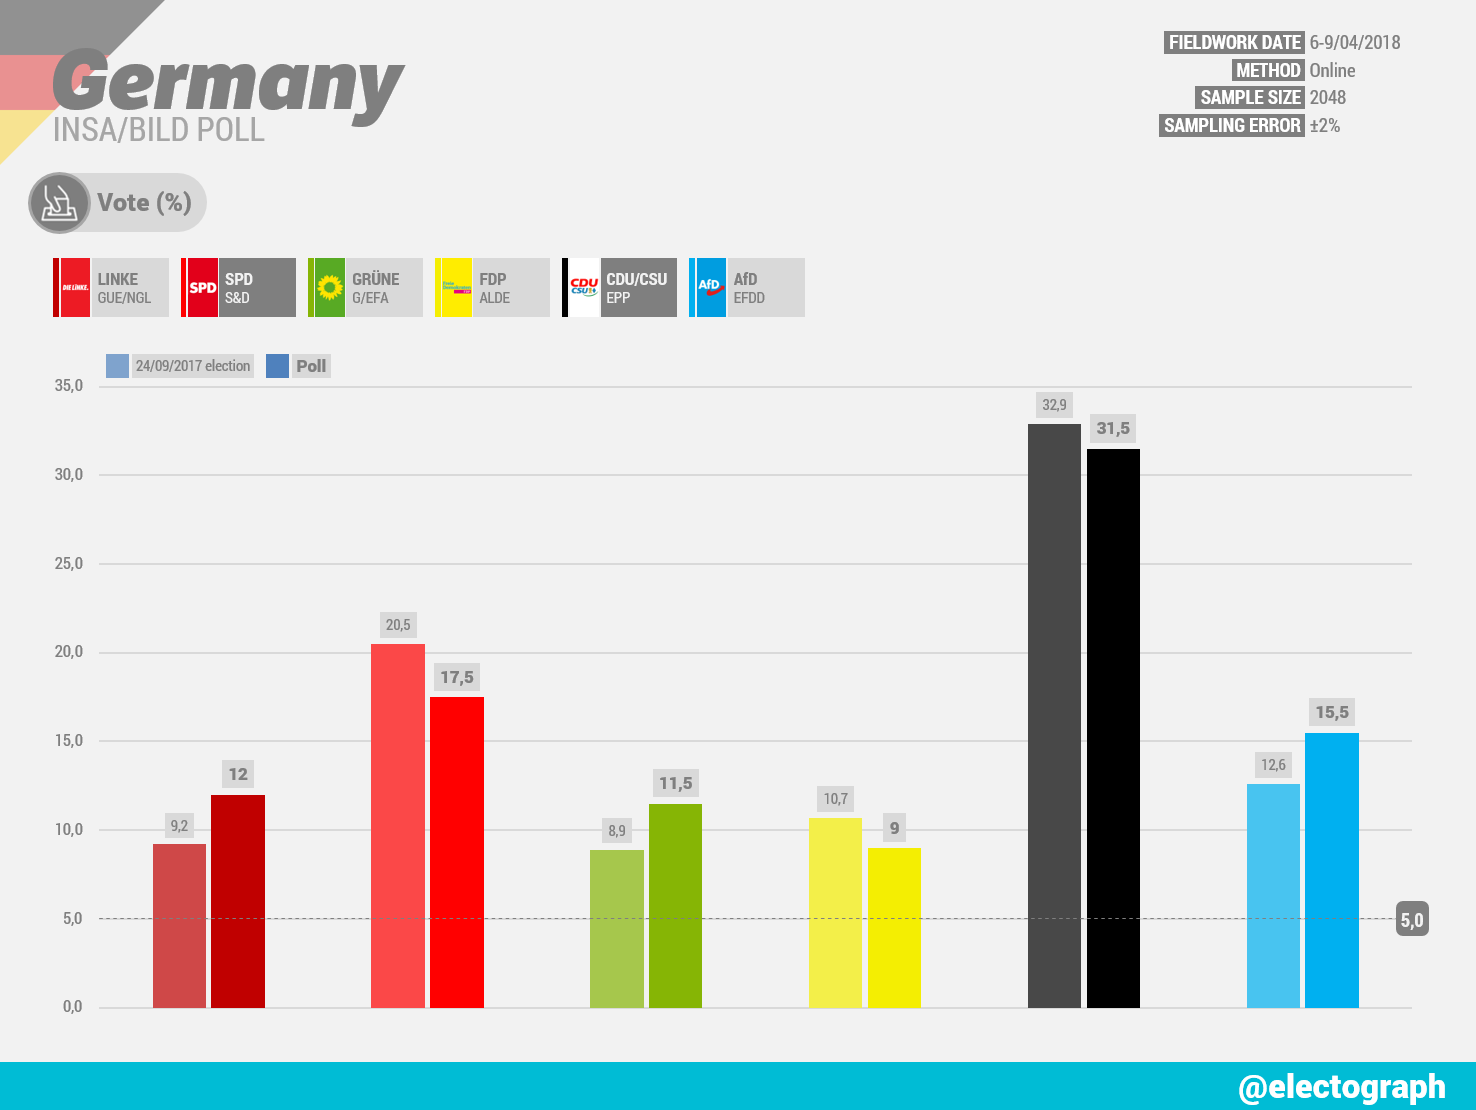 GERMANY INSA poll chart for Bild, April 2018